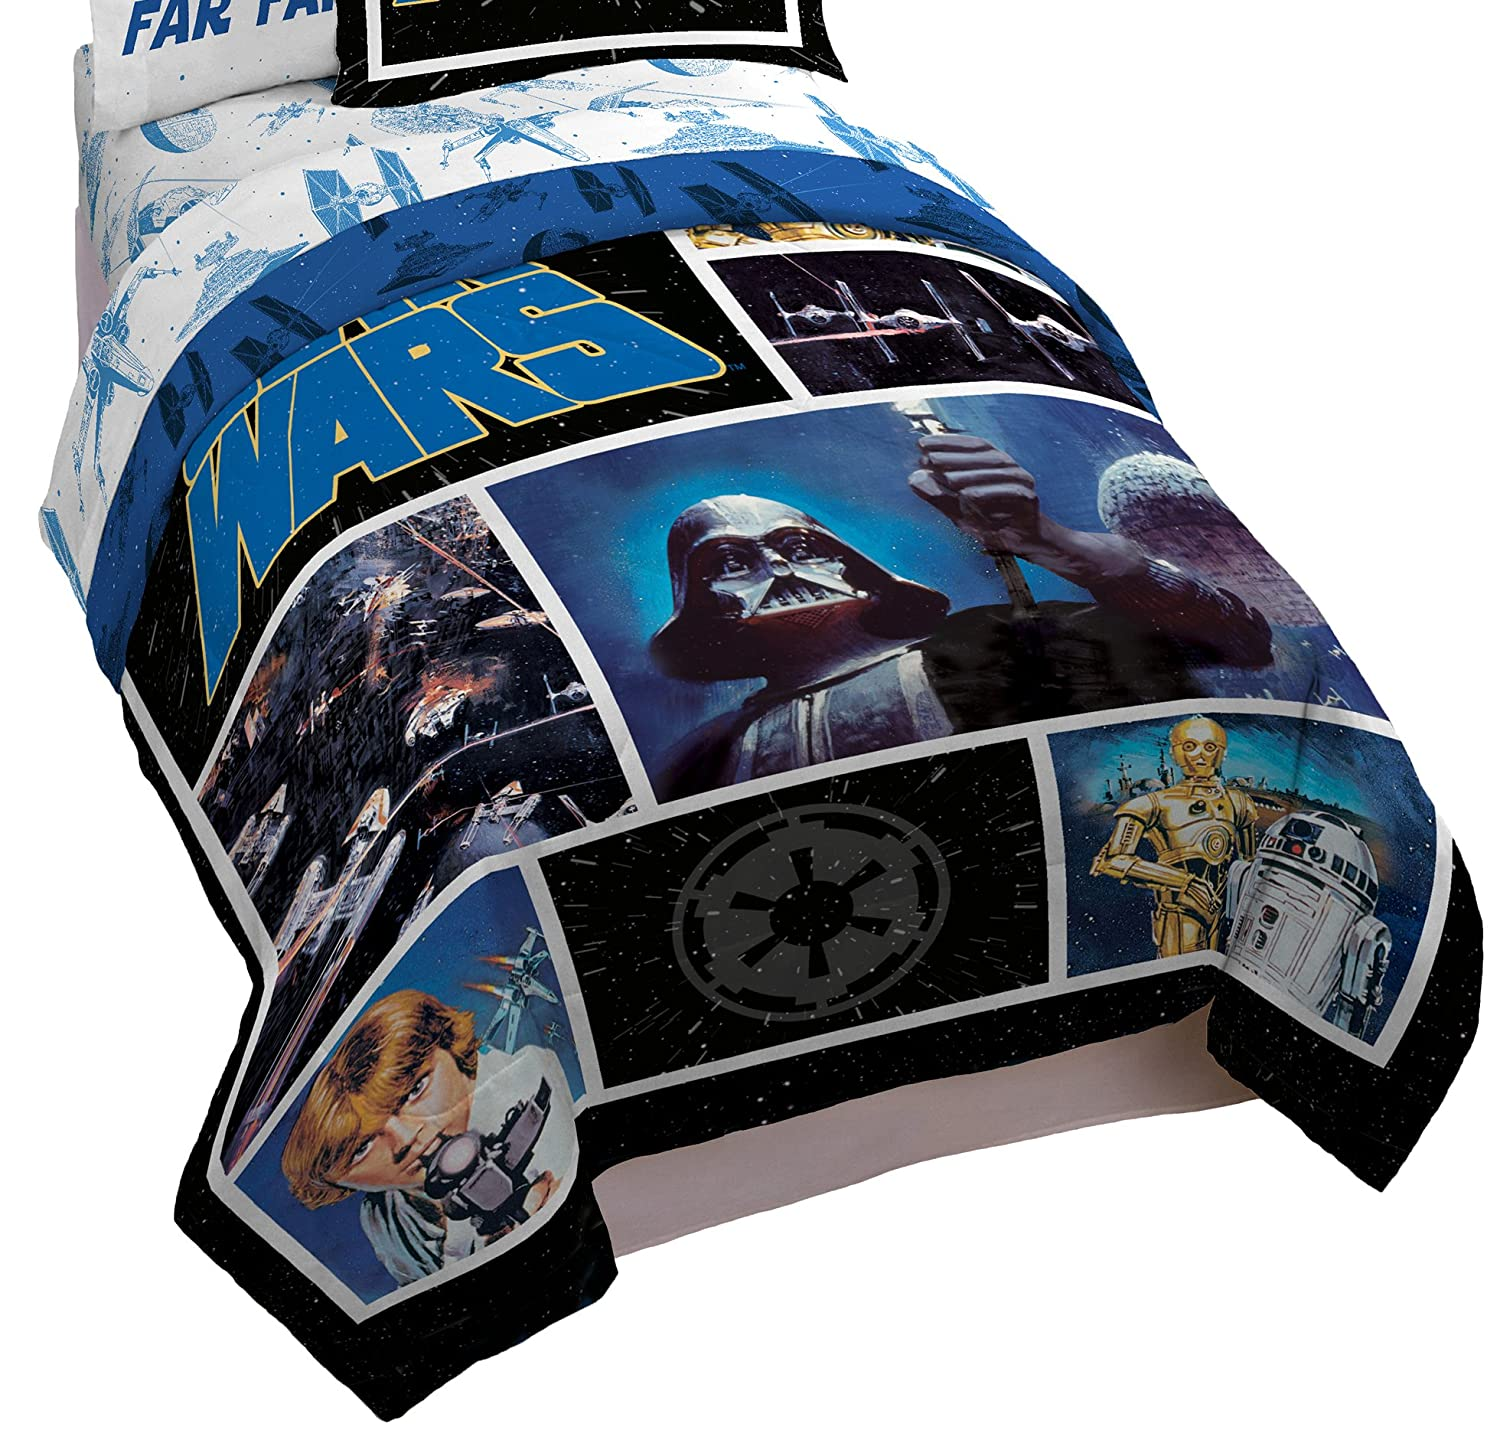 Star Wars Classic Logo Twin/Full Comforter - Super Soft Kids Reversible Bedding features Darth Vader - Fade Resistant Polyester Includes 1 Bonus Sham (Official Star Wars Product) Jay Franco and Sons Inc. JF27680ECD